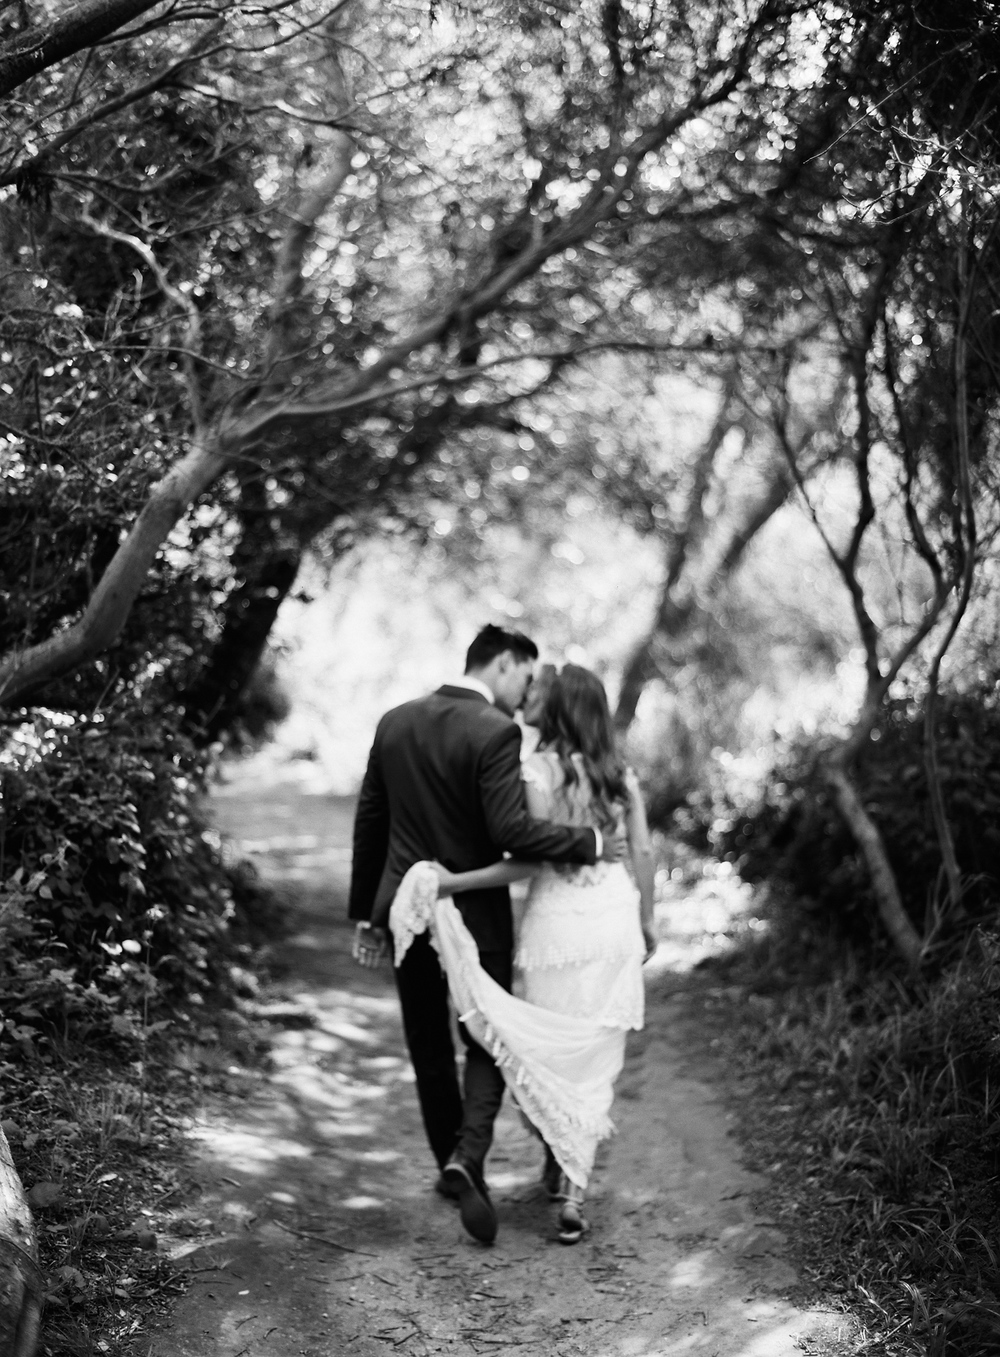 ryan-flynn-photography-best-wedding-photos-2014-0117.JPG